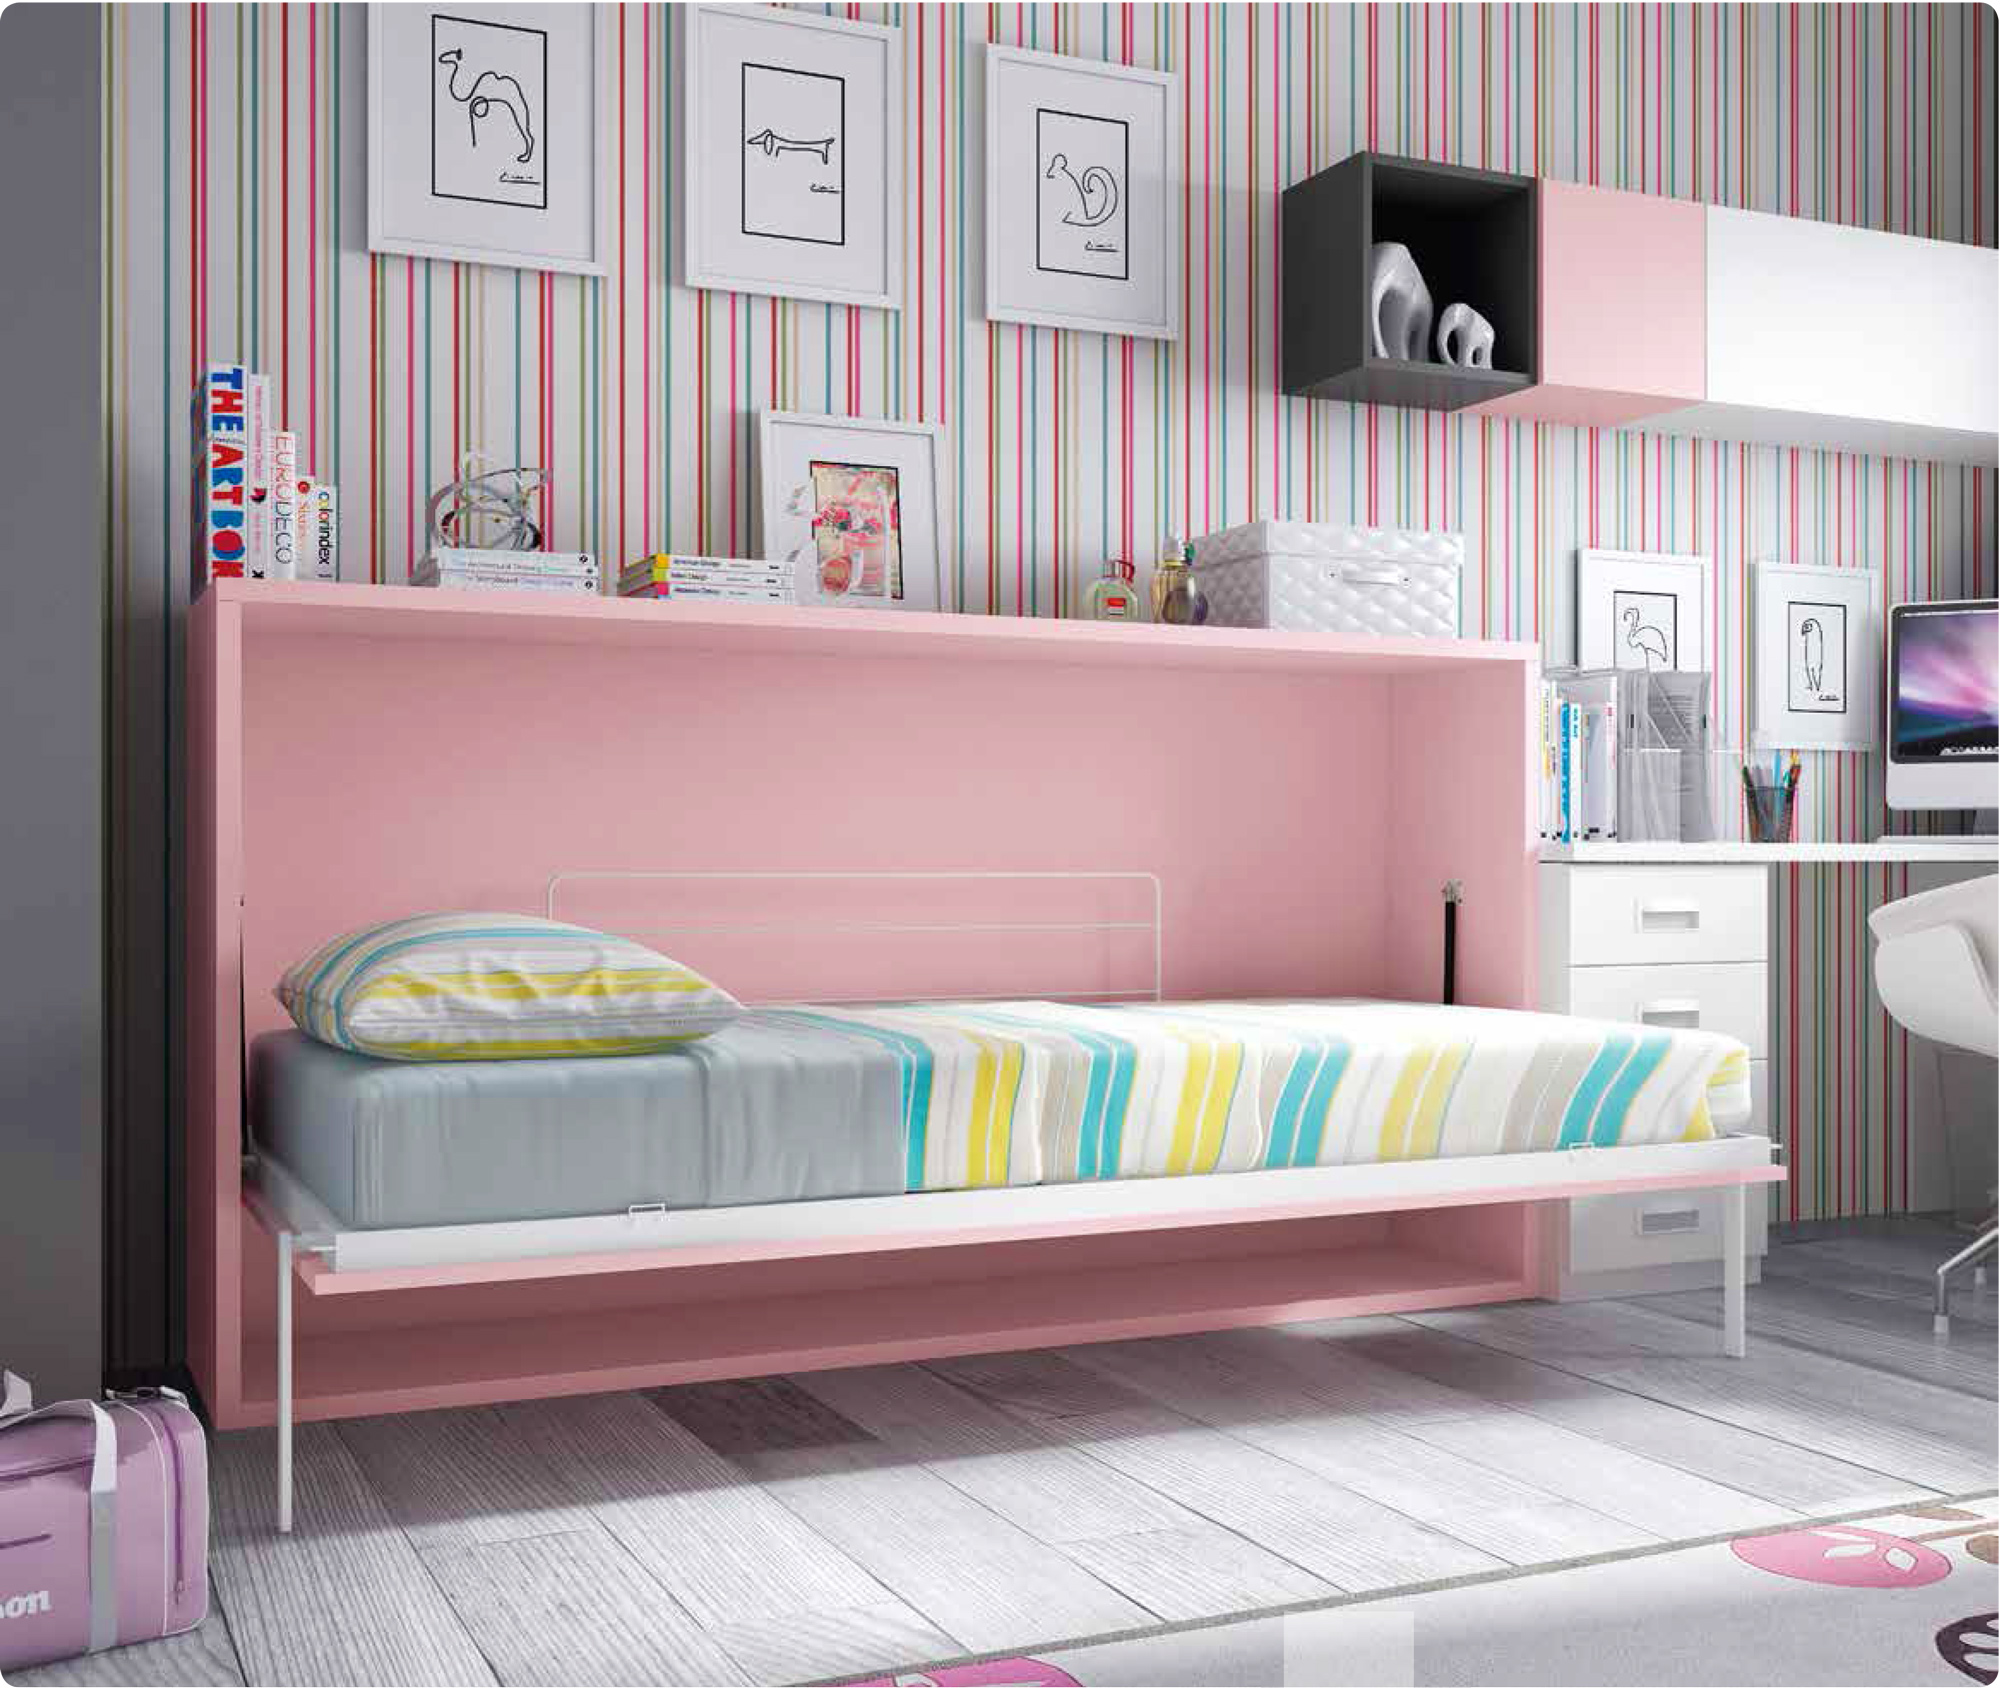 le guide d 39 achat du lit escamotable mural ou lit rabattable. Black Bedroom Furniture Sets. Home Design Ideas